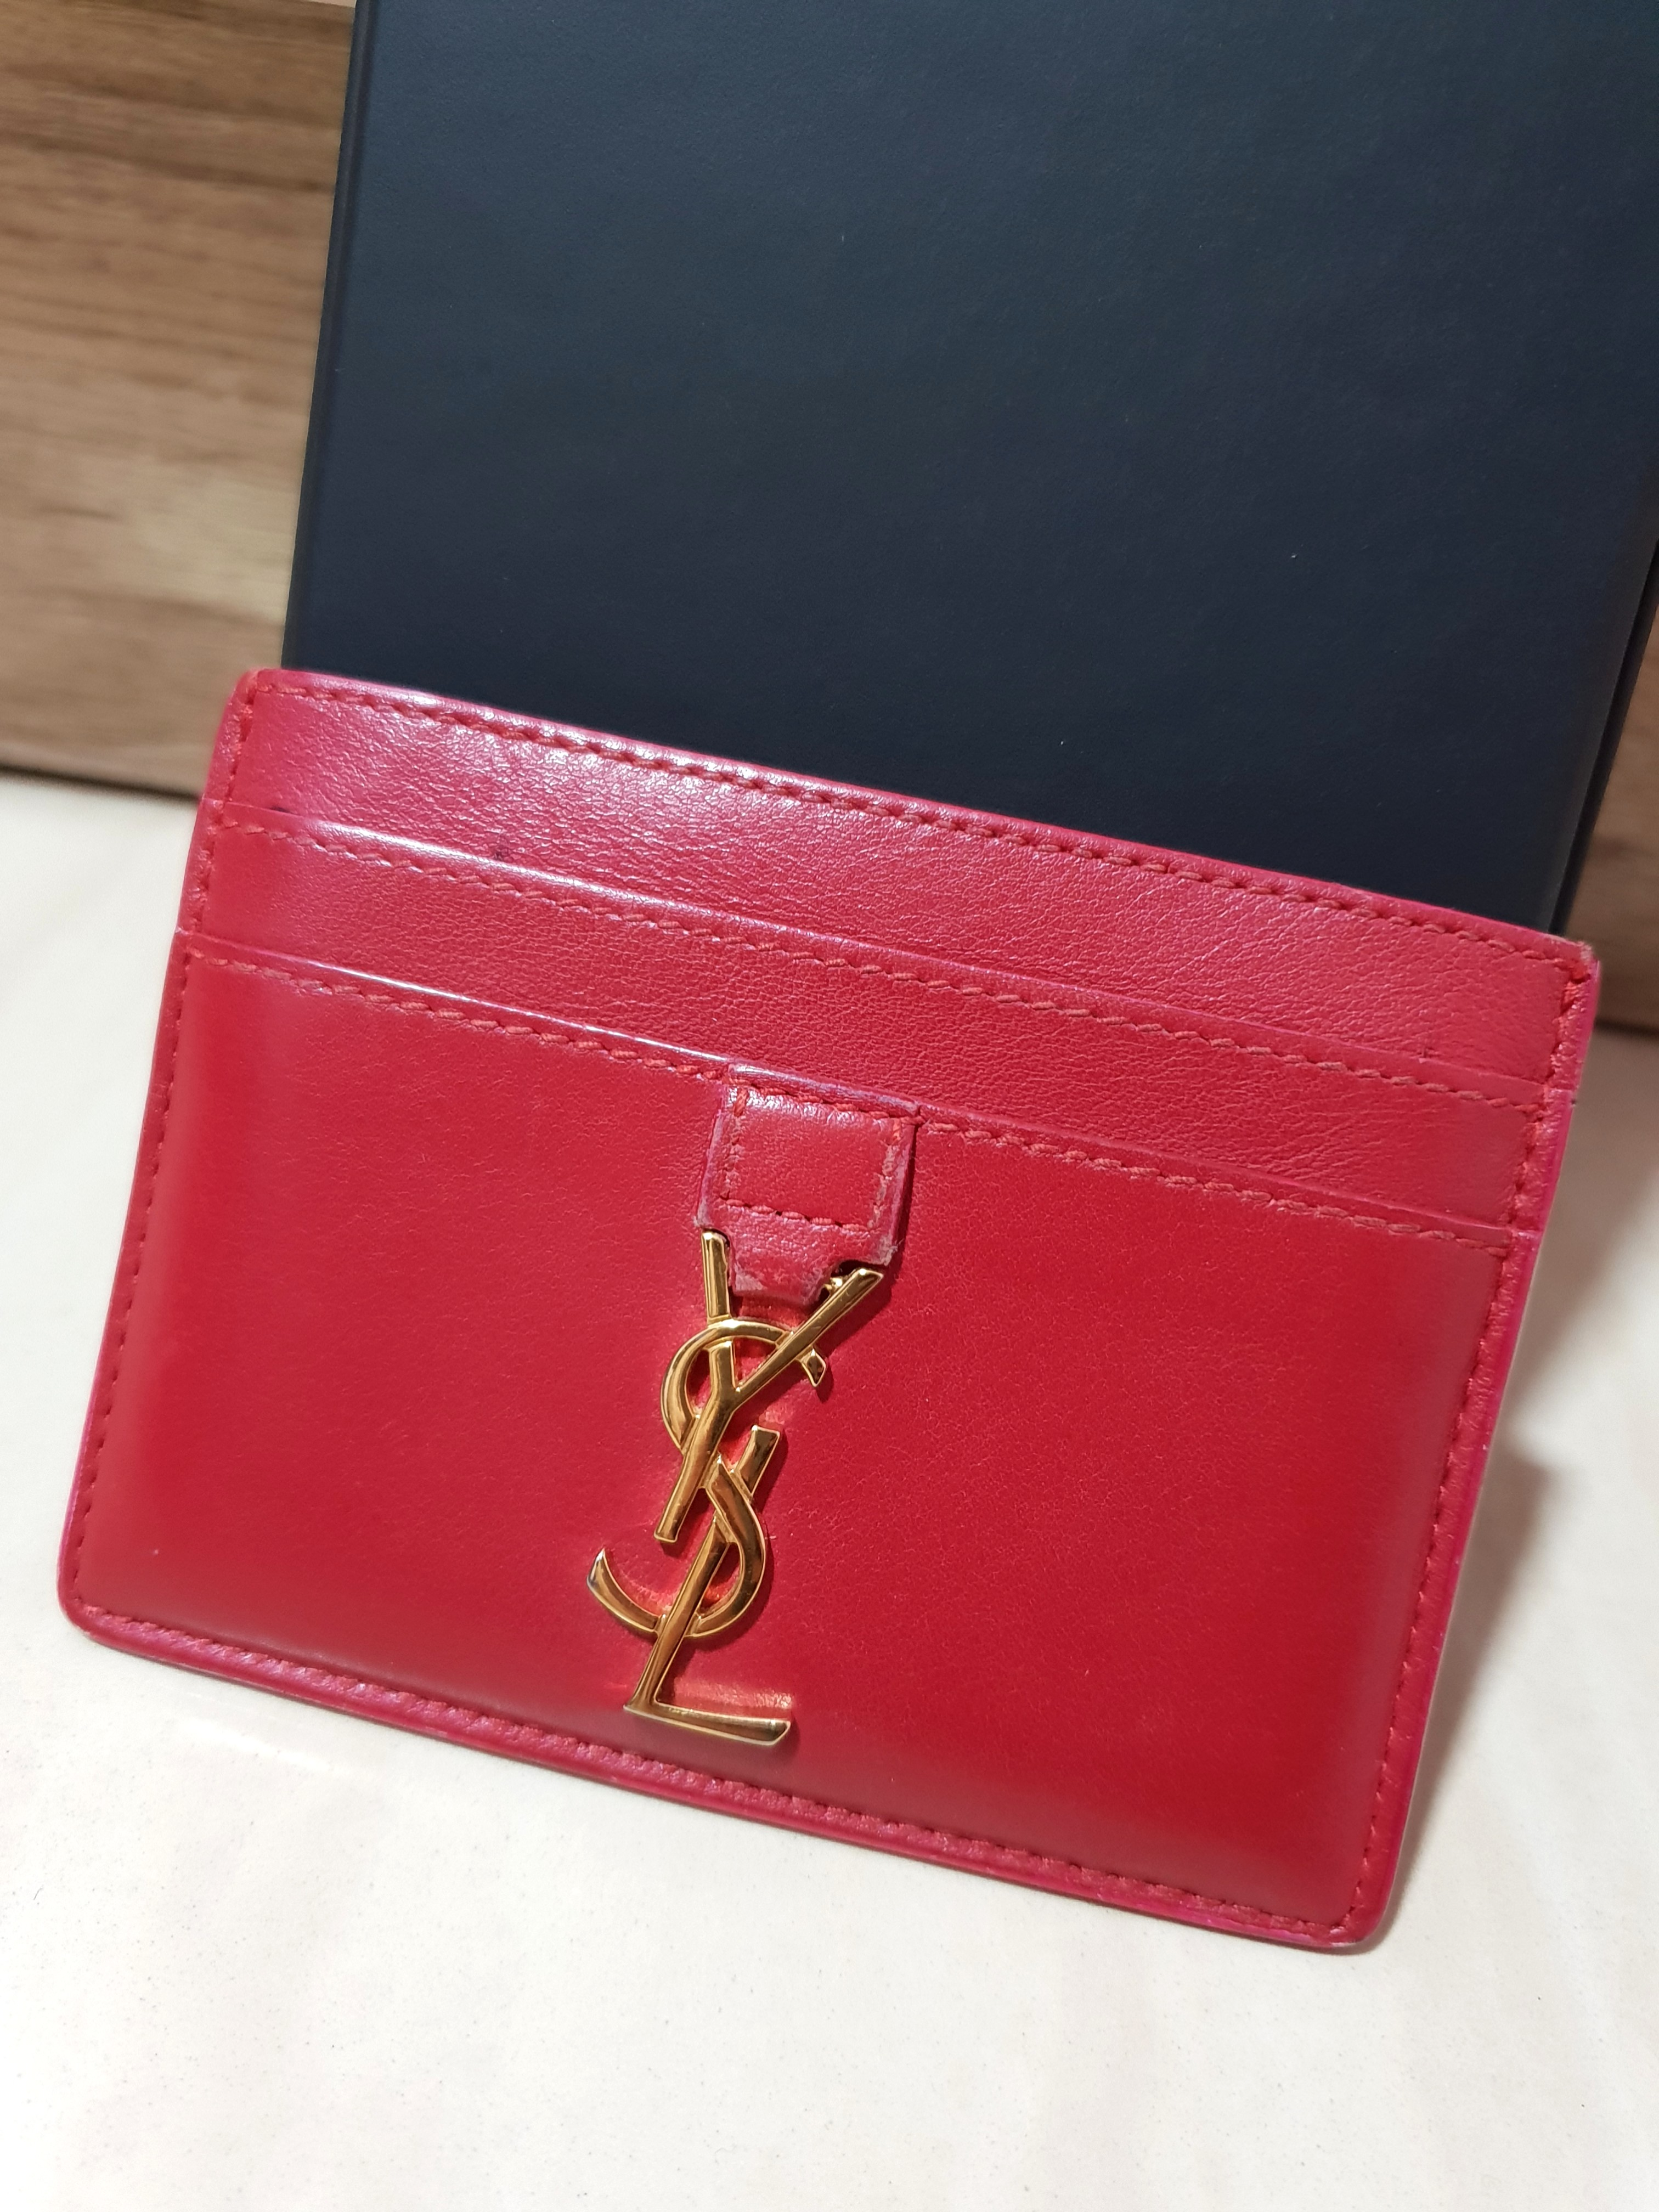 6b8f4dd5bc8 YSL cardholder, Luxury, Bags & Wallets, Others on Carousell